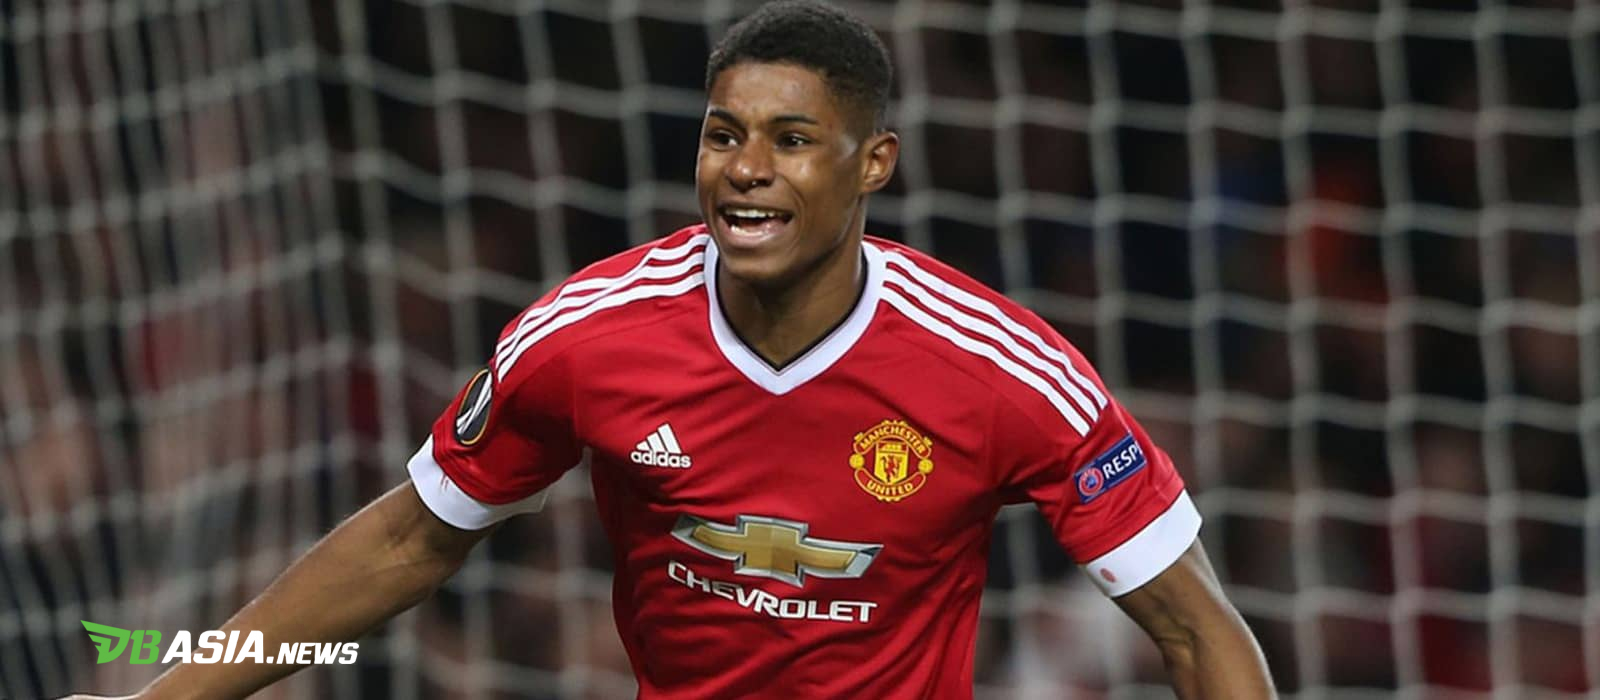 big sale a84a3 7cba2 DBAsia News | Rashford Reason to Change the Jersey Number to ...